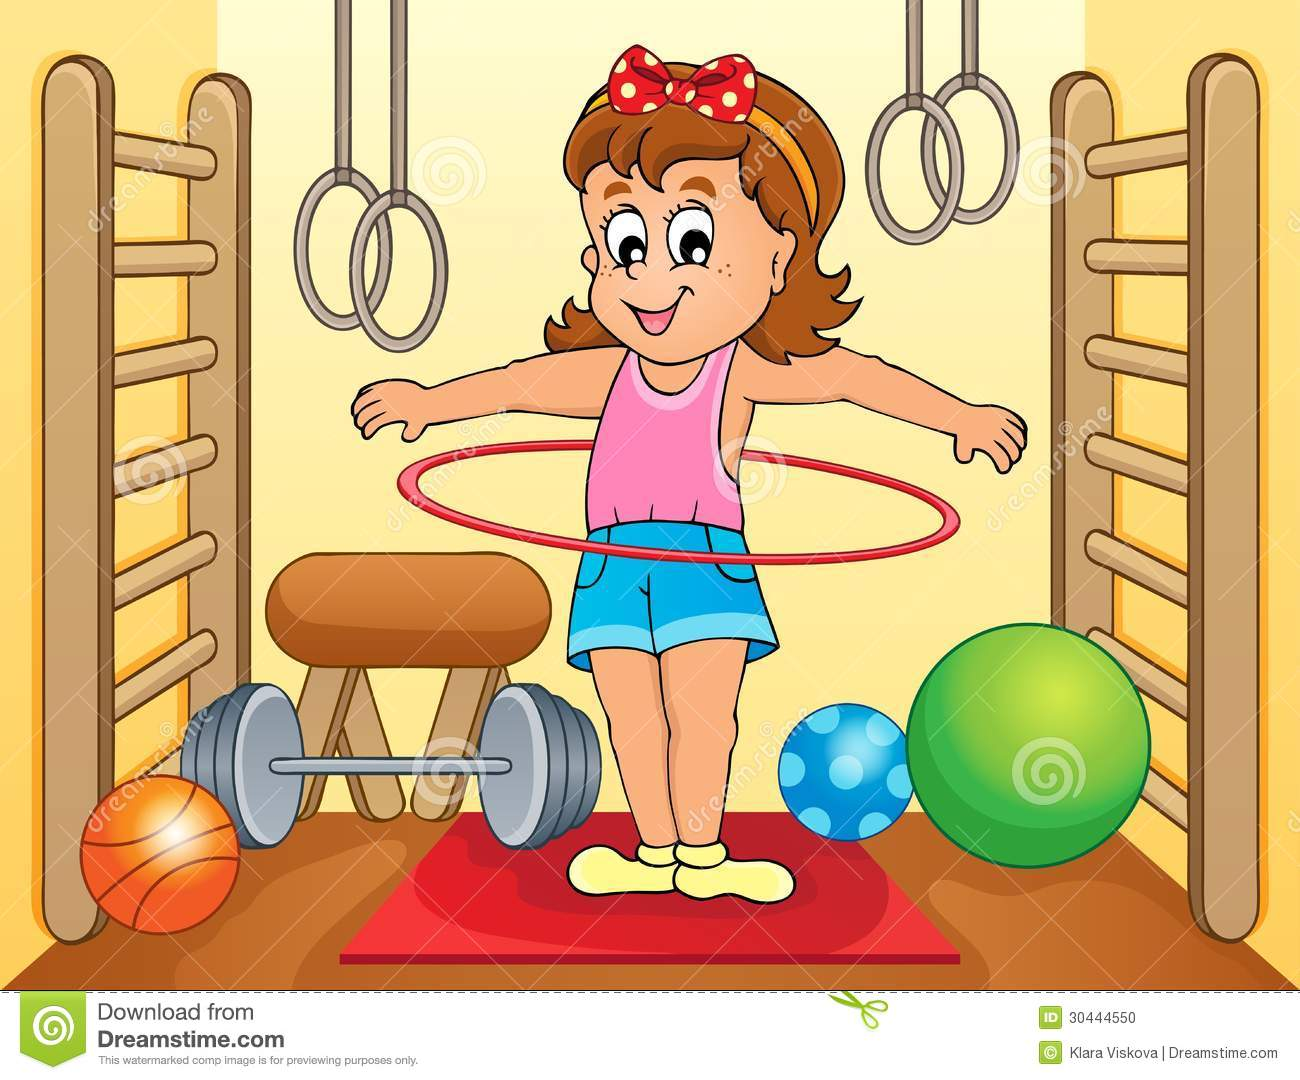 Sport and gym topic image stock photo